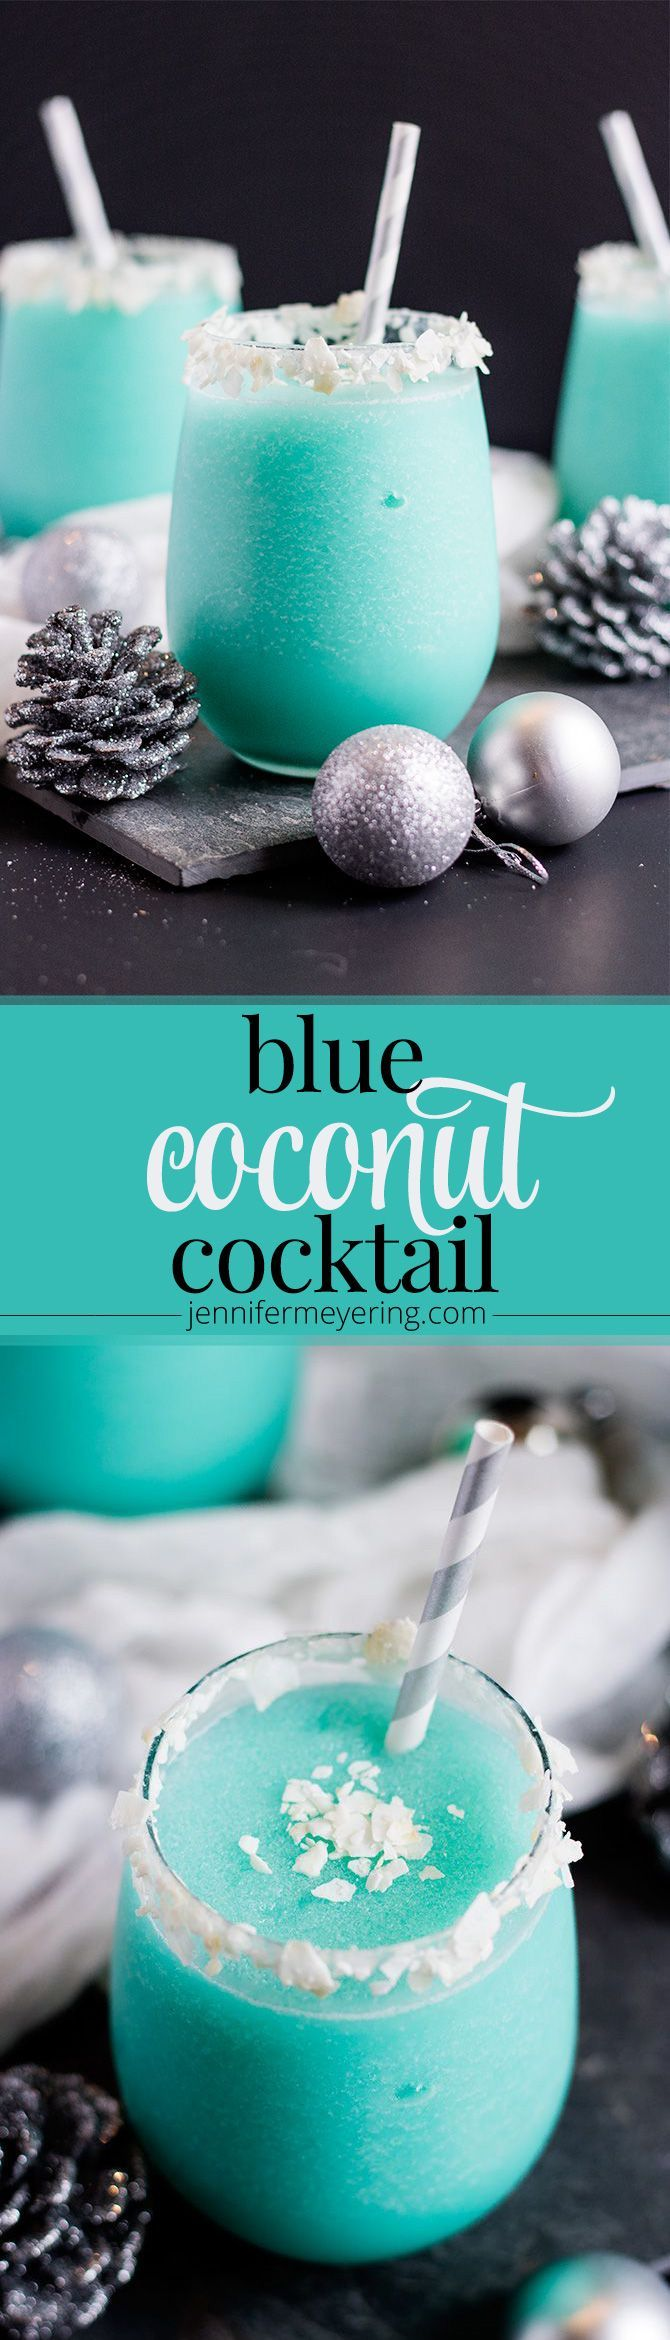 Coconut Cocktail - Vodka, pineapple juice, cream of coconut, and Blue Curacao come together to make a festive and colorful cocktail.